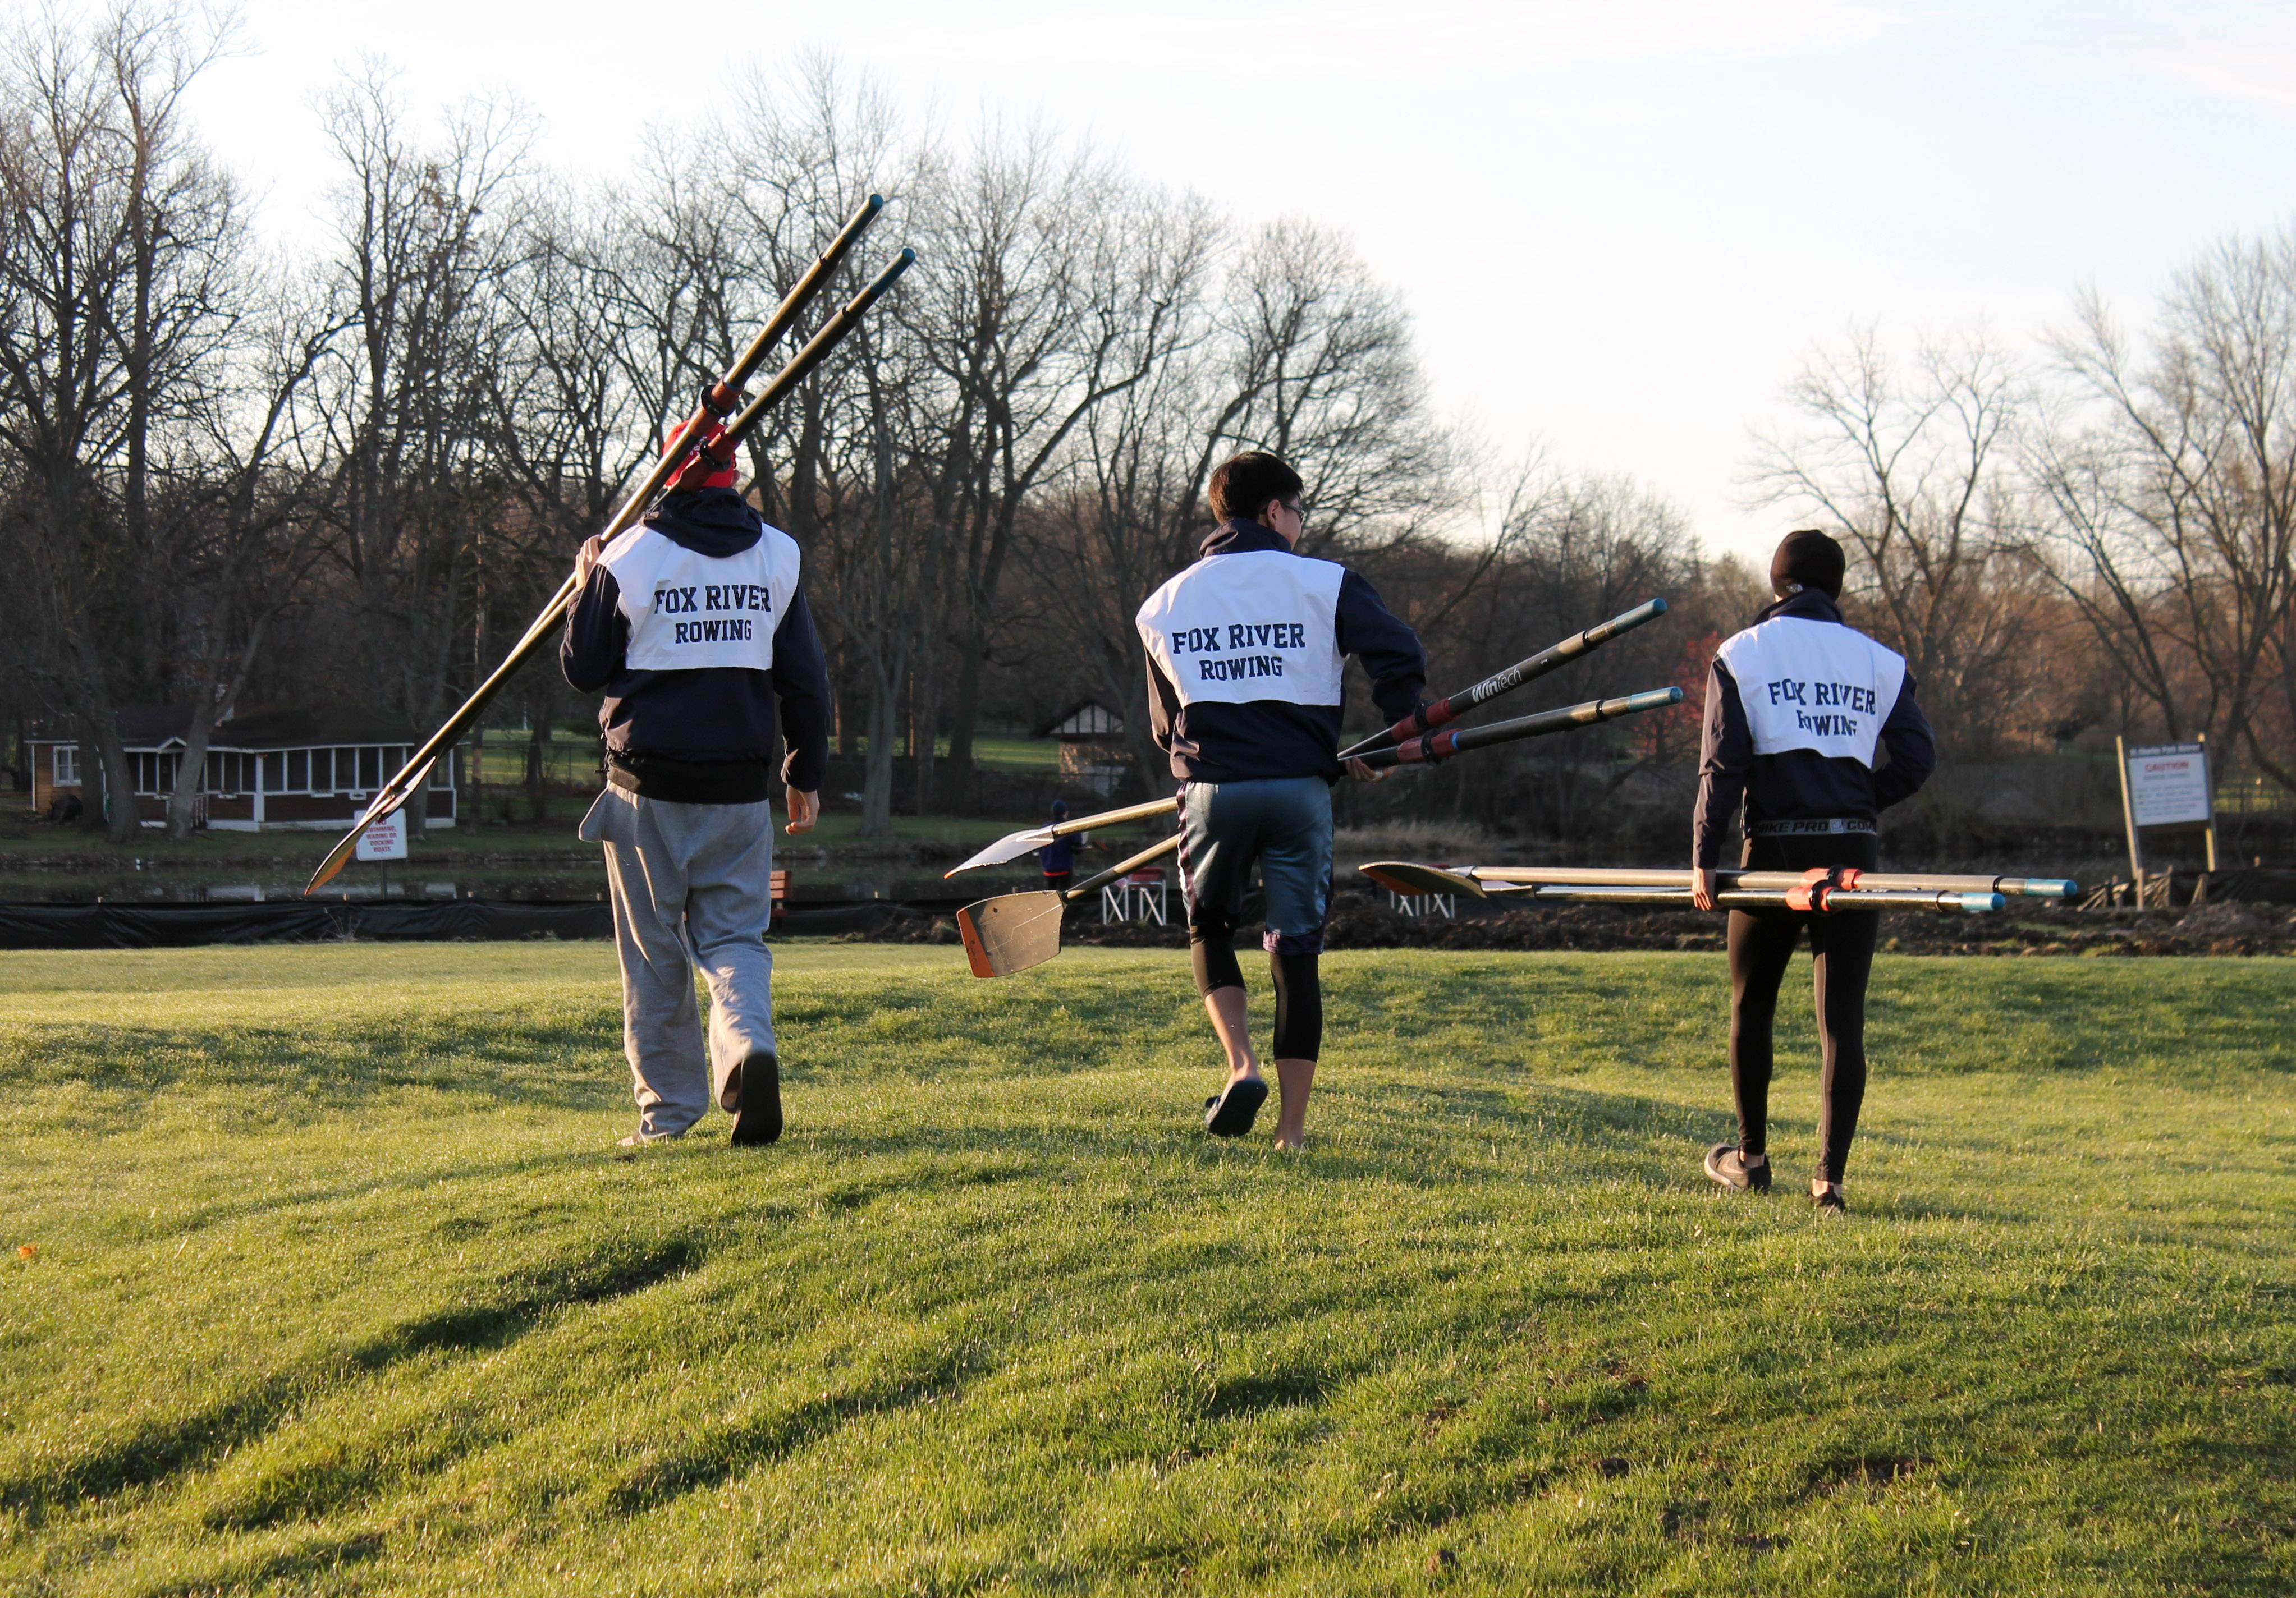 Members of the Fox River Rowing Association will introduce prospective rowers to the sport on Saturday at Ferson Creek Park in St. Charles. From left are Gavin Richetti, Andrew Song and Sam Belmonte.